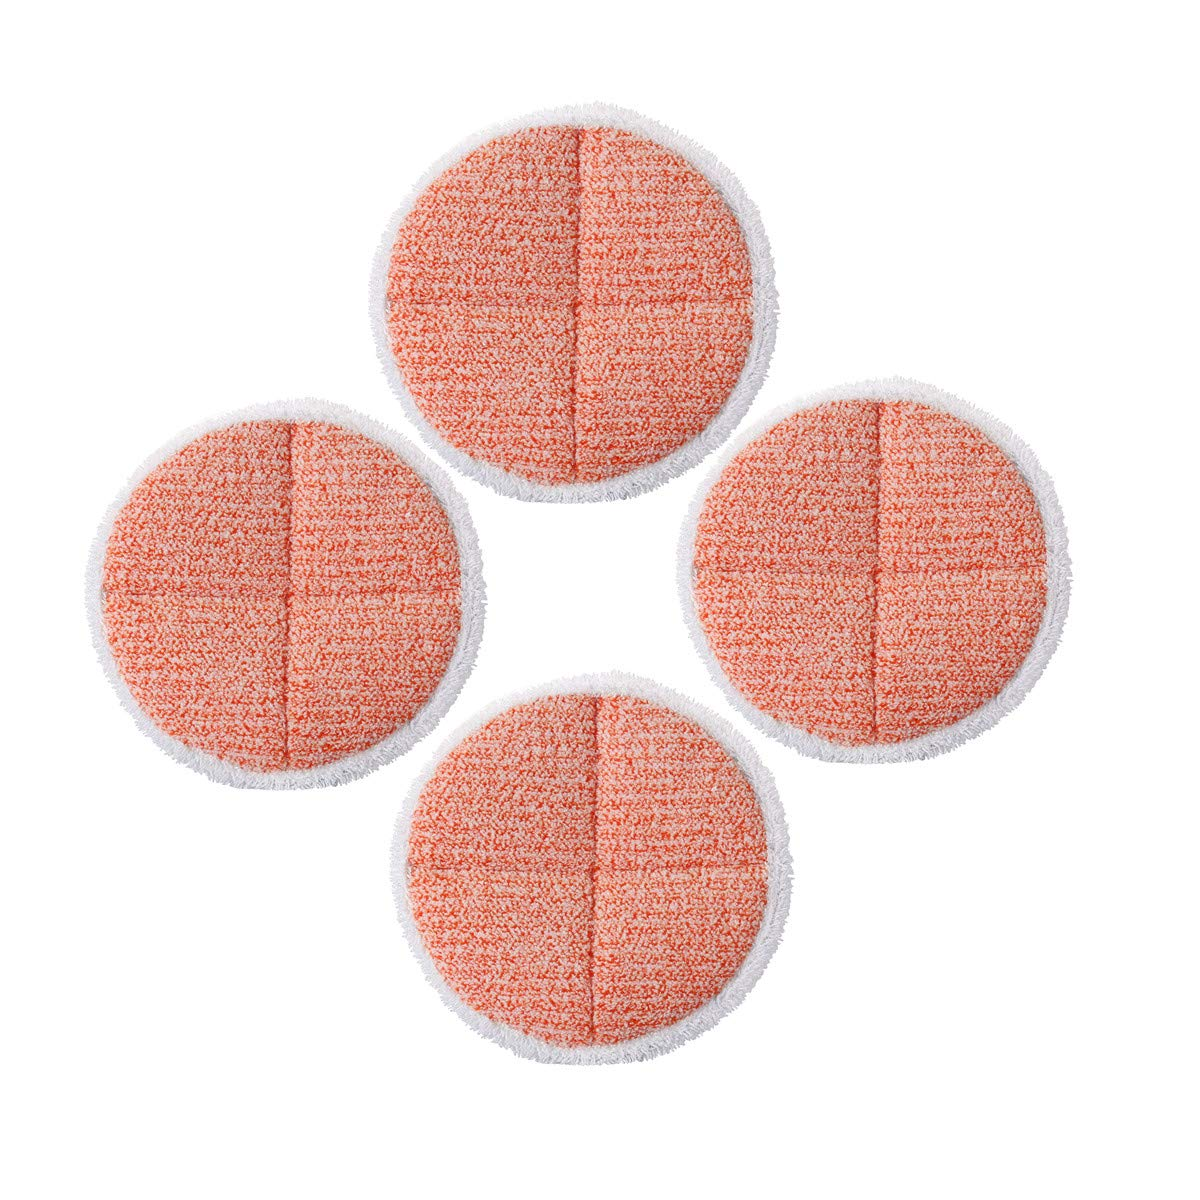 Mop Pads Replacement for Bissell Spinwave 2124, 2039, 2037 Series Powered Hard Floor Mop (4 Heavy Scrub Pads)